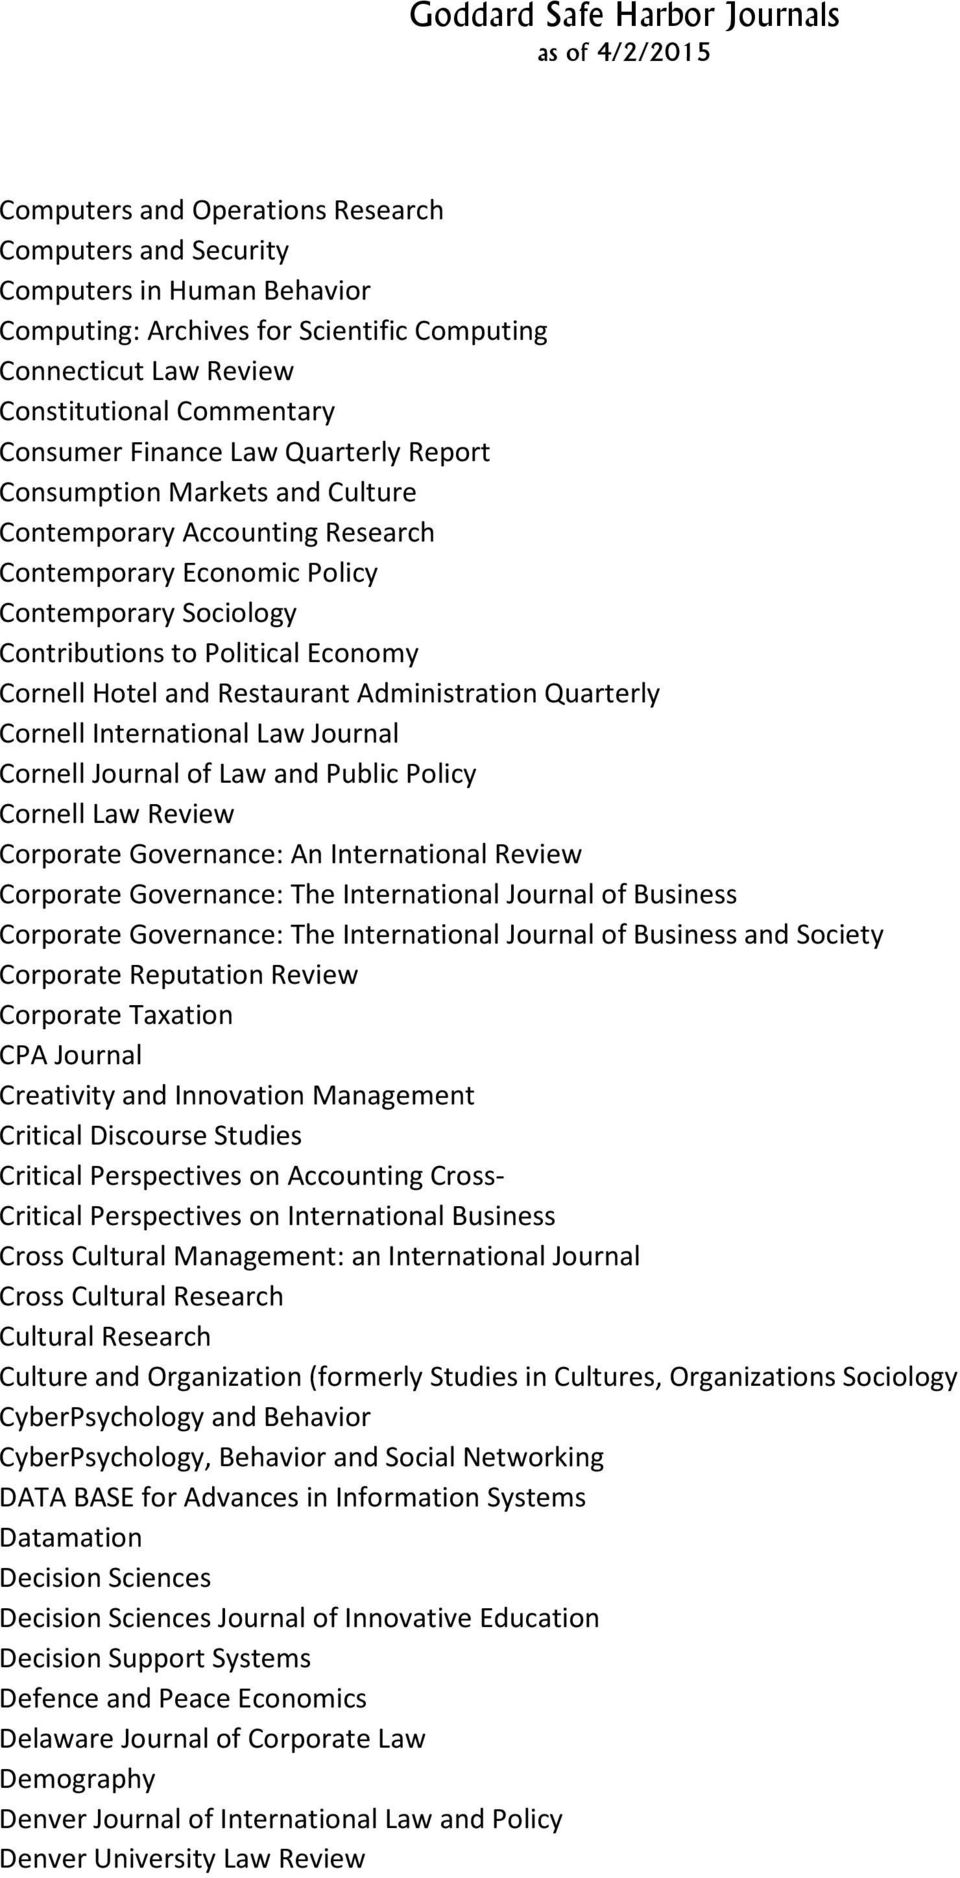 Administration Quarterly Cornell International Law Journal Cornell Journal of Law and Public Policy Cornell Law Review Corporate Governance: An International Review Corporate Governance: The